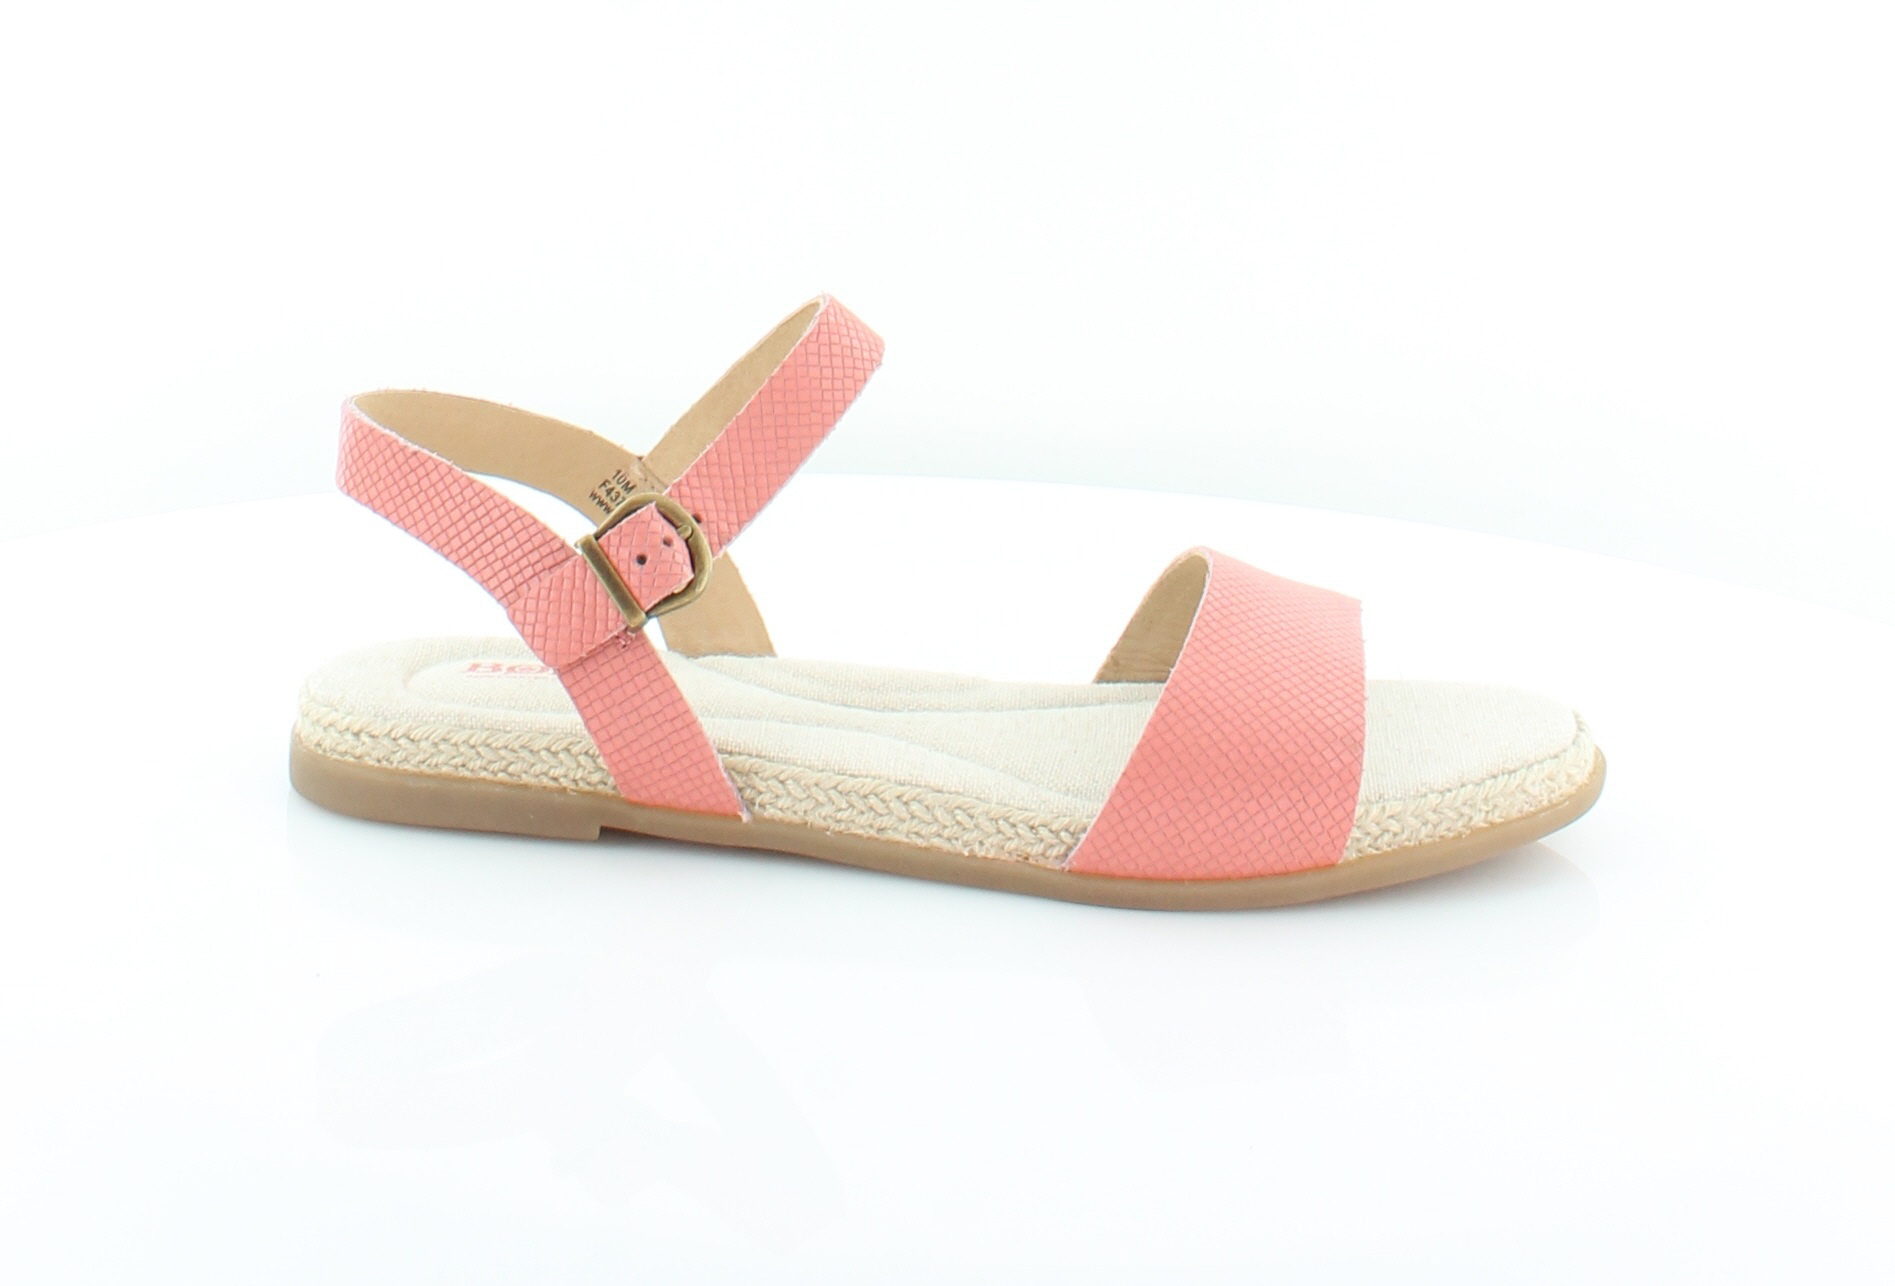 e74fb73aa93a Born Womens Welch Pink Leather Flat Sandals Shoes 10 Medium (b M ...